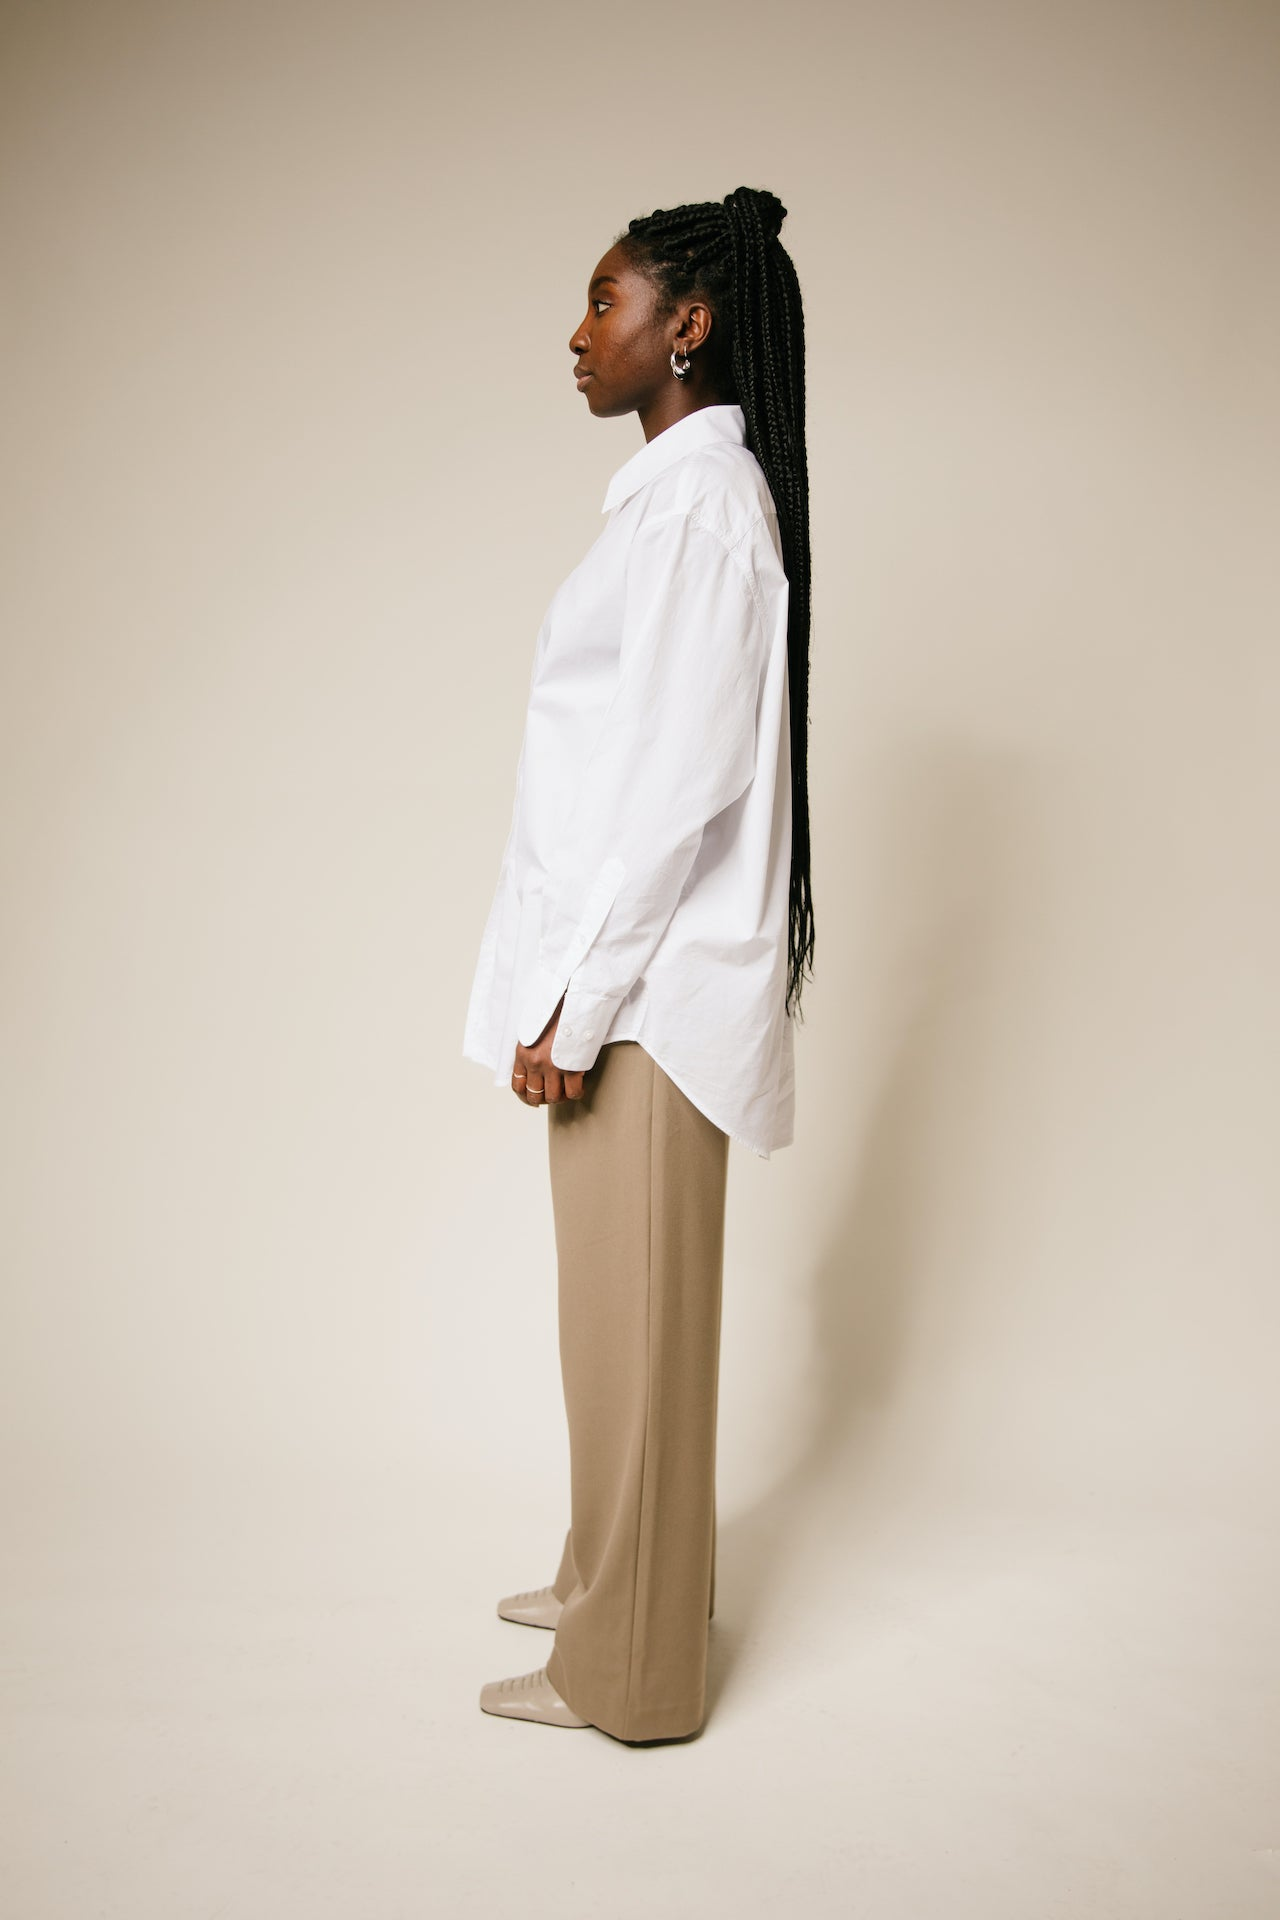 The oversize blouse by ASHES AND SOIL is the perfect, elegant, and casual top in an oversized fit. It has a wide collar, gently sloping shoulders, and a rounded hem. Material: Organic cotton 100%